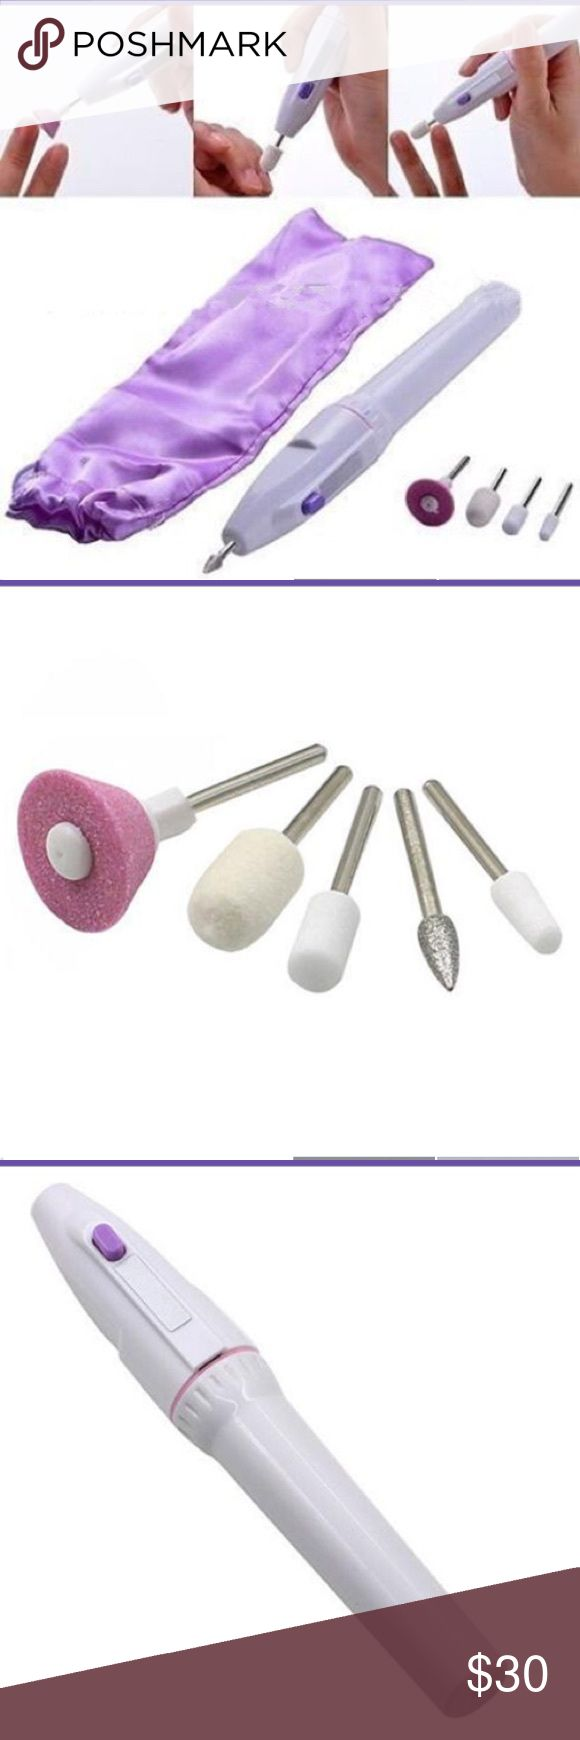 NWOT⭐️Electric Nail File Kit -Mani/Pedi Set NWOT⭐️5 Bit Electric Nail File Kit. Get a professional mani/pedi without leaving home! This device allows you to shape, sculpt and polish your nails quickly & safely. It's powerful enough to trim & shape hard acrylics and tough toenails, but gentle enough to massage and stimulate sensitive cuticles.  ·Small, lightweight, precision operation & convenient Powered by: 2 x AA Battery (not included).  Includes - 1 x Electric Pen Shaped Drill/File, 5…